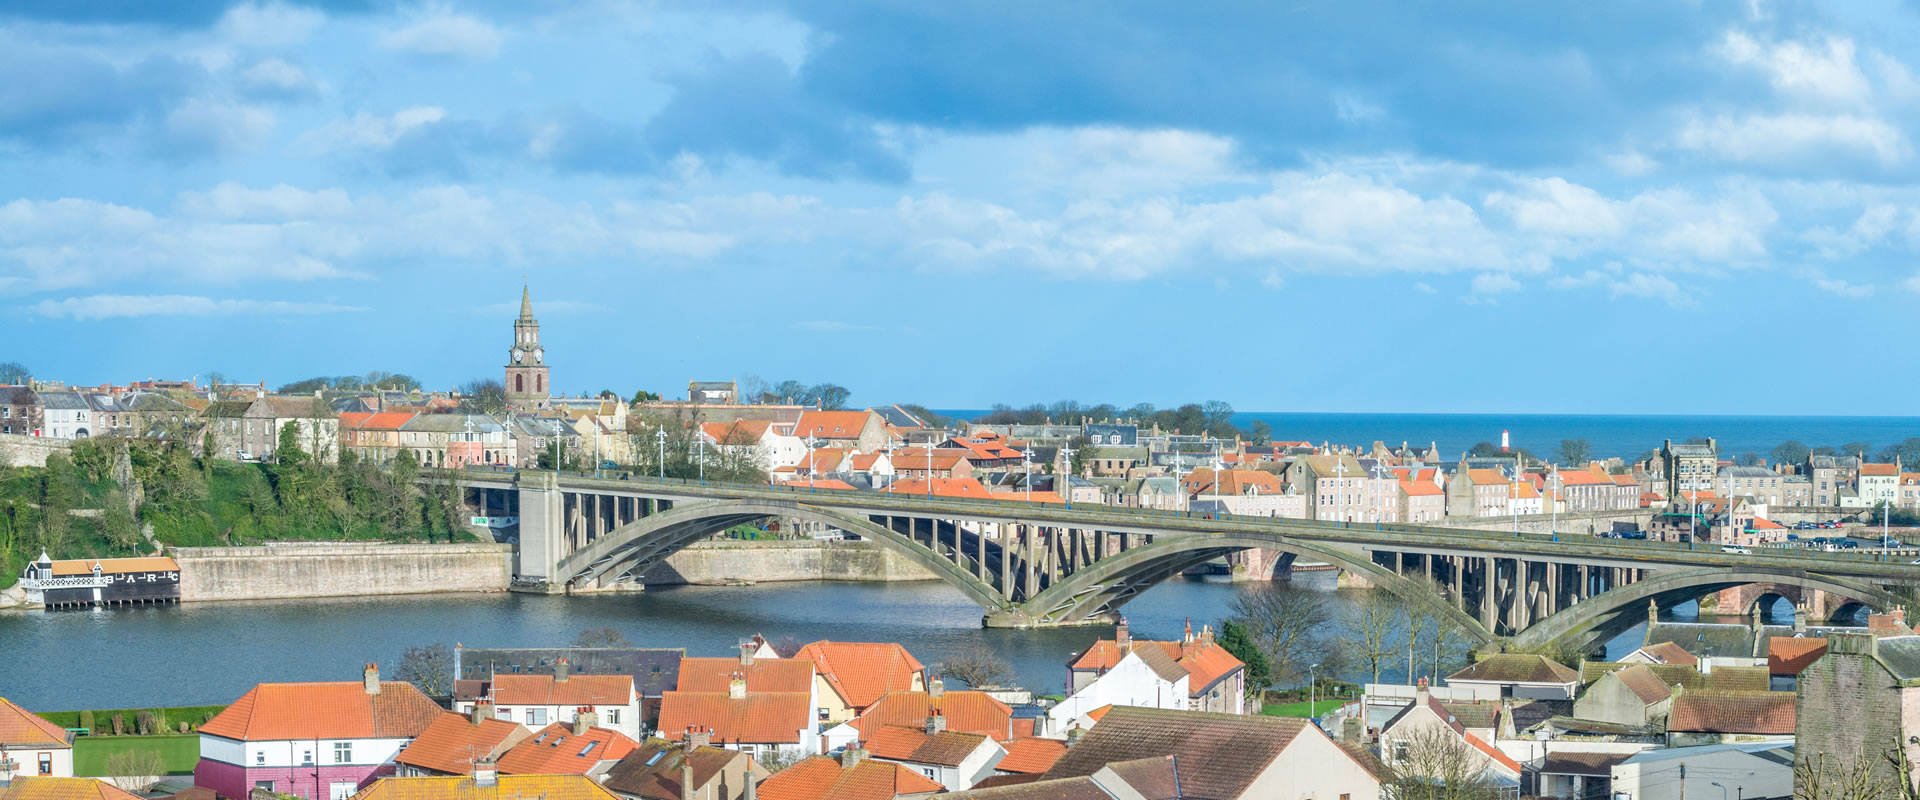 Berwick-upon-Tweed Town Council